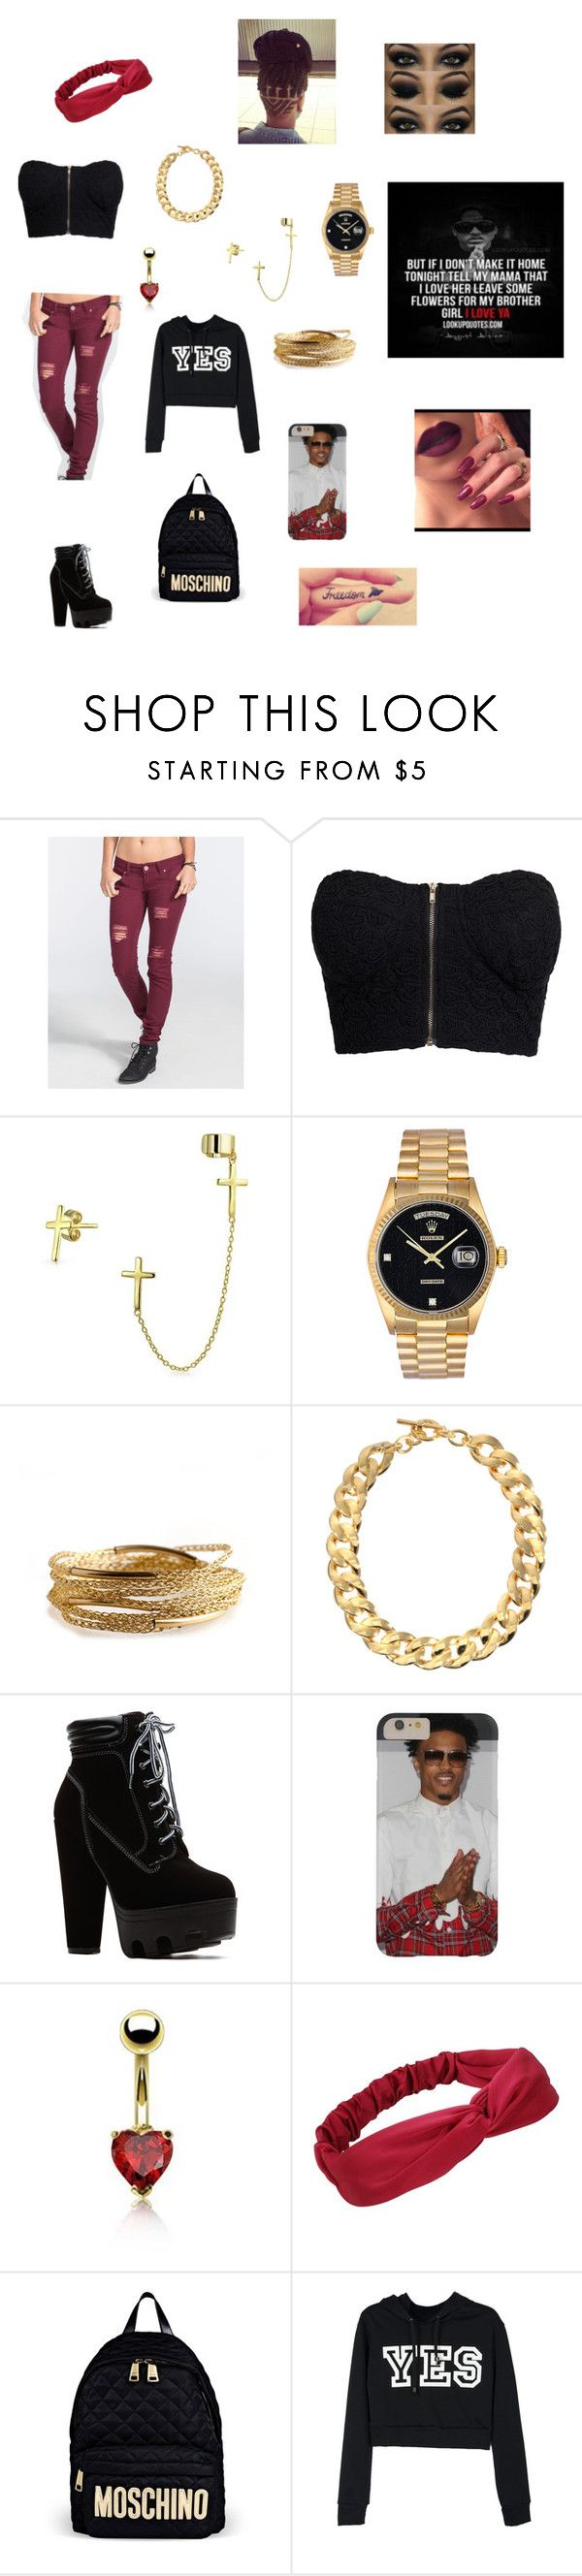 """August Alsina Concert"" by lovebreezybaby ❤ liked on Polyvore featuring beauty, RSQ, NLY Trend, Bling Jewelry, Rolex, YooLa, Michael Kors and Moschino"